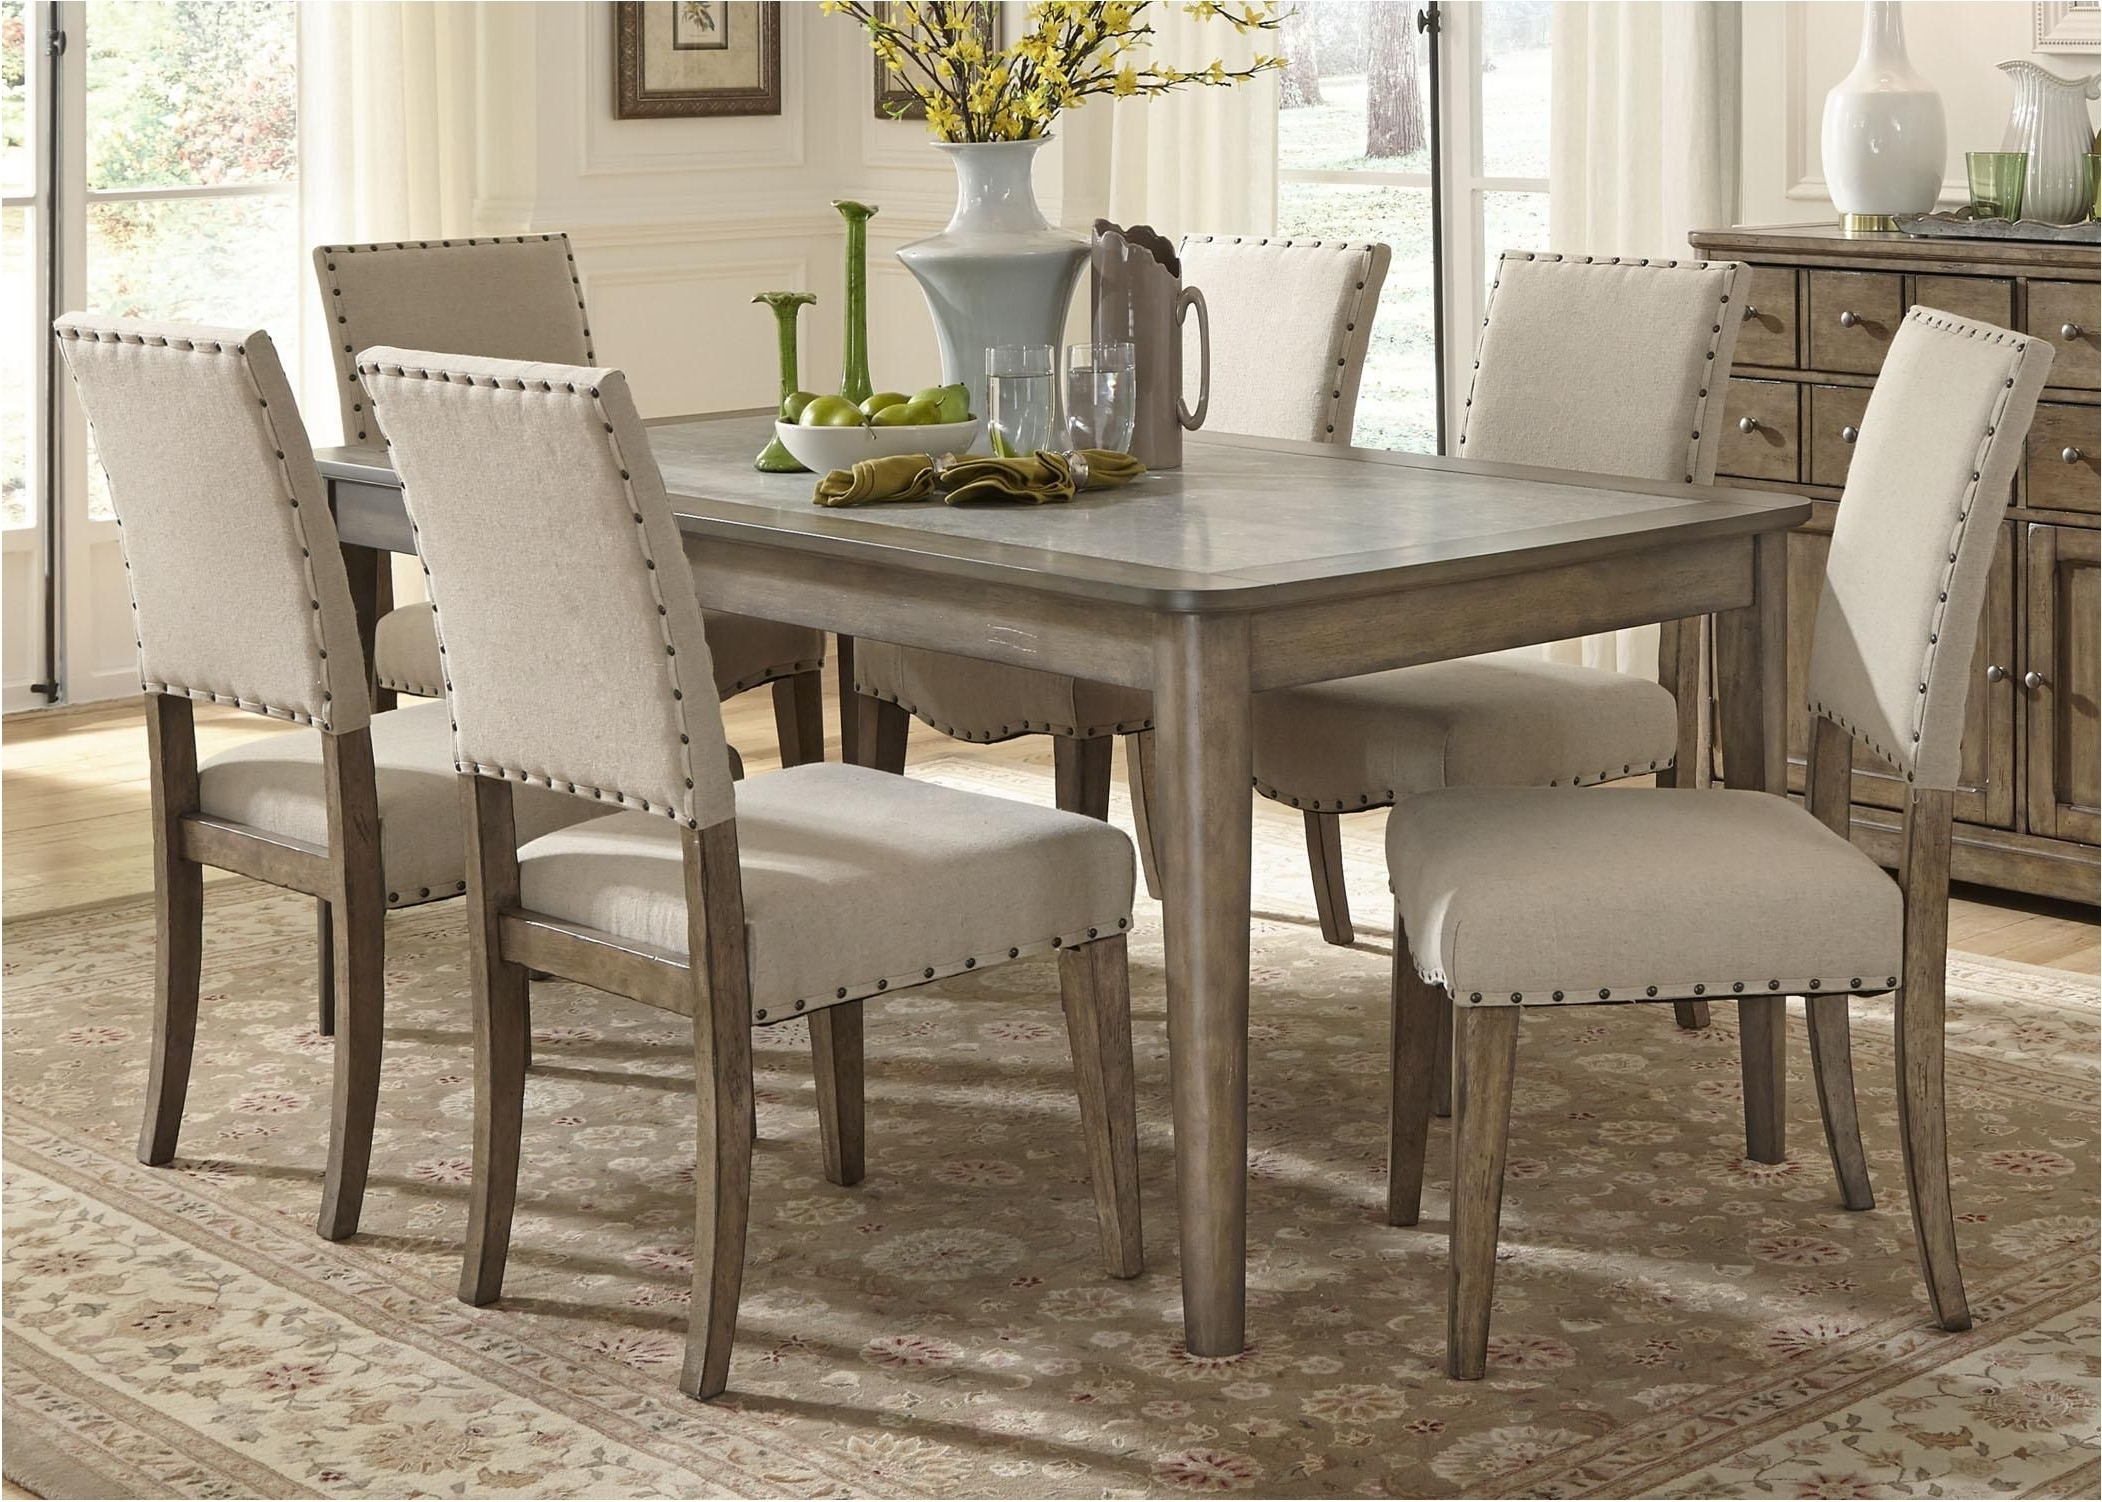 Kitchen Dining Sets regarding Most Up-to-Date Lovely New Casual Rustic 7 Piece Dining Table And Chairs Set